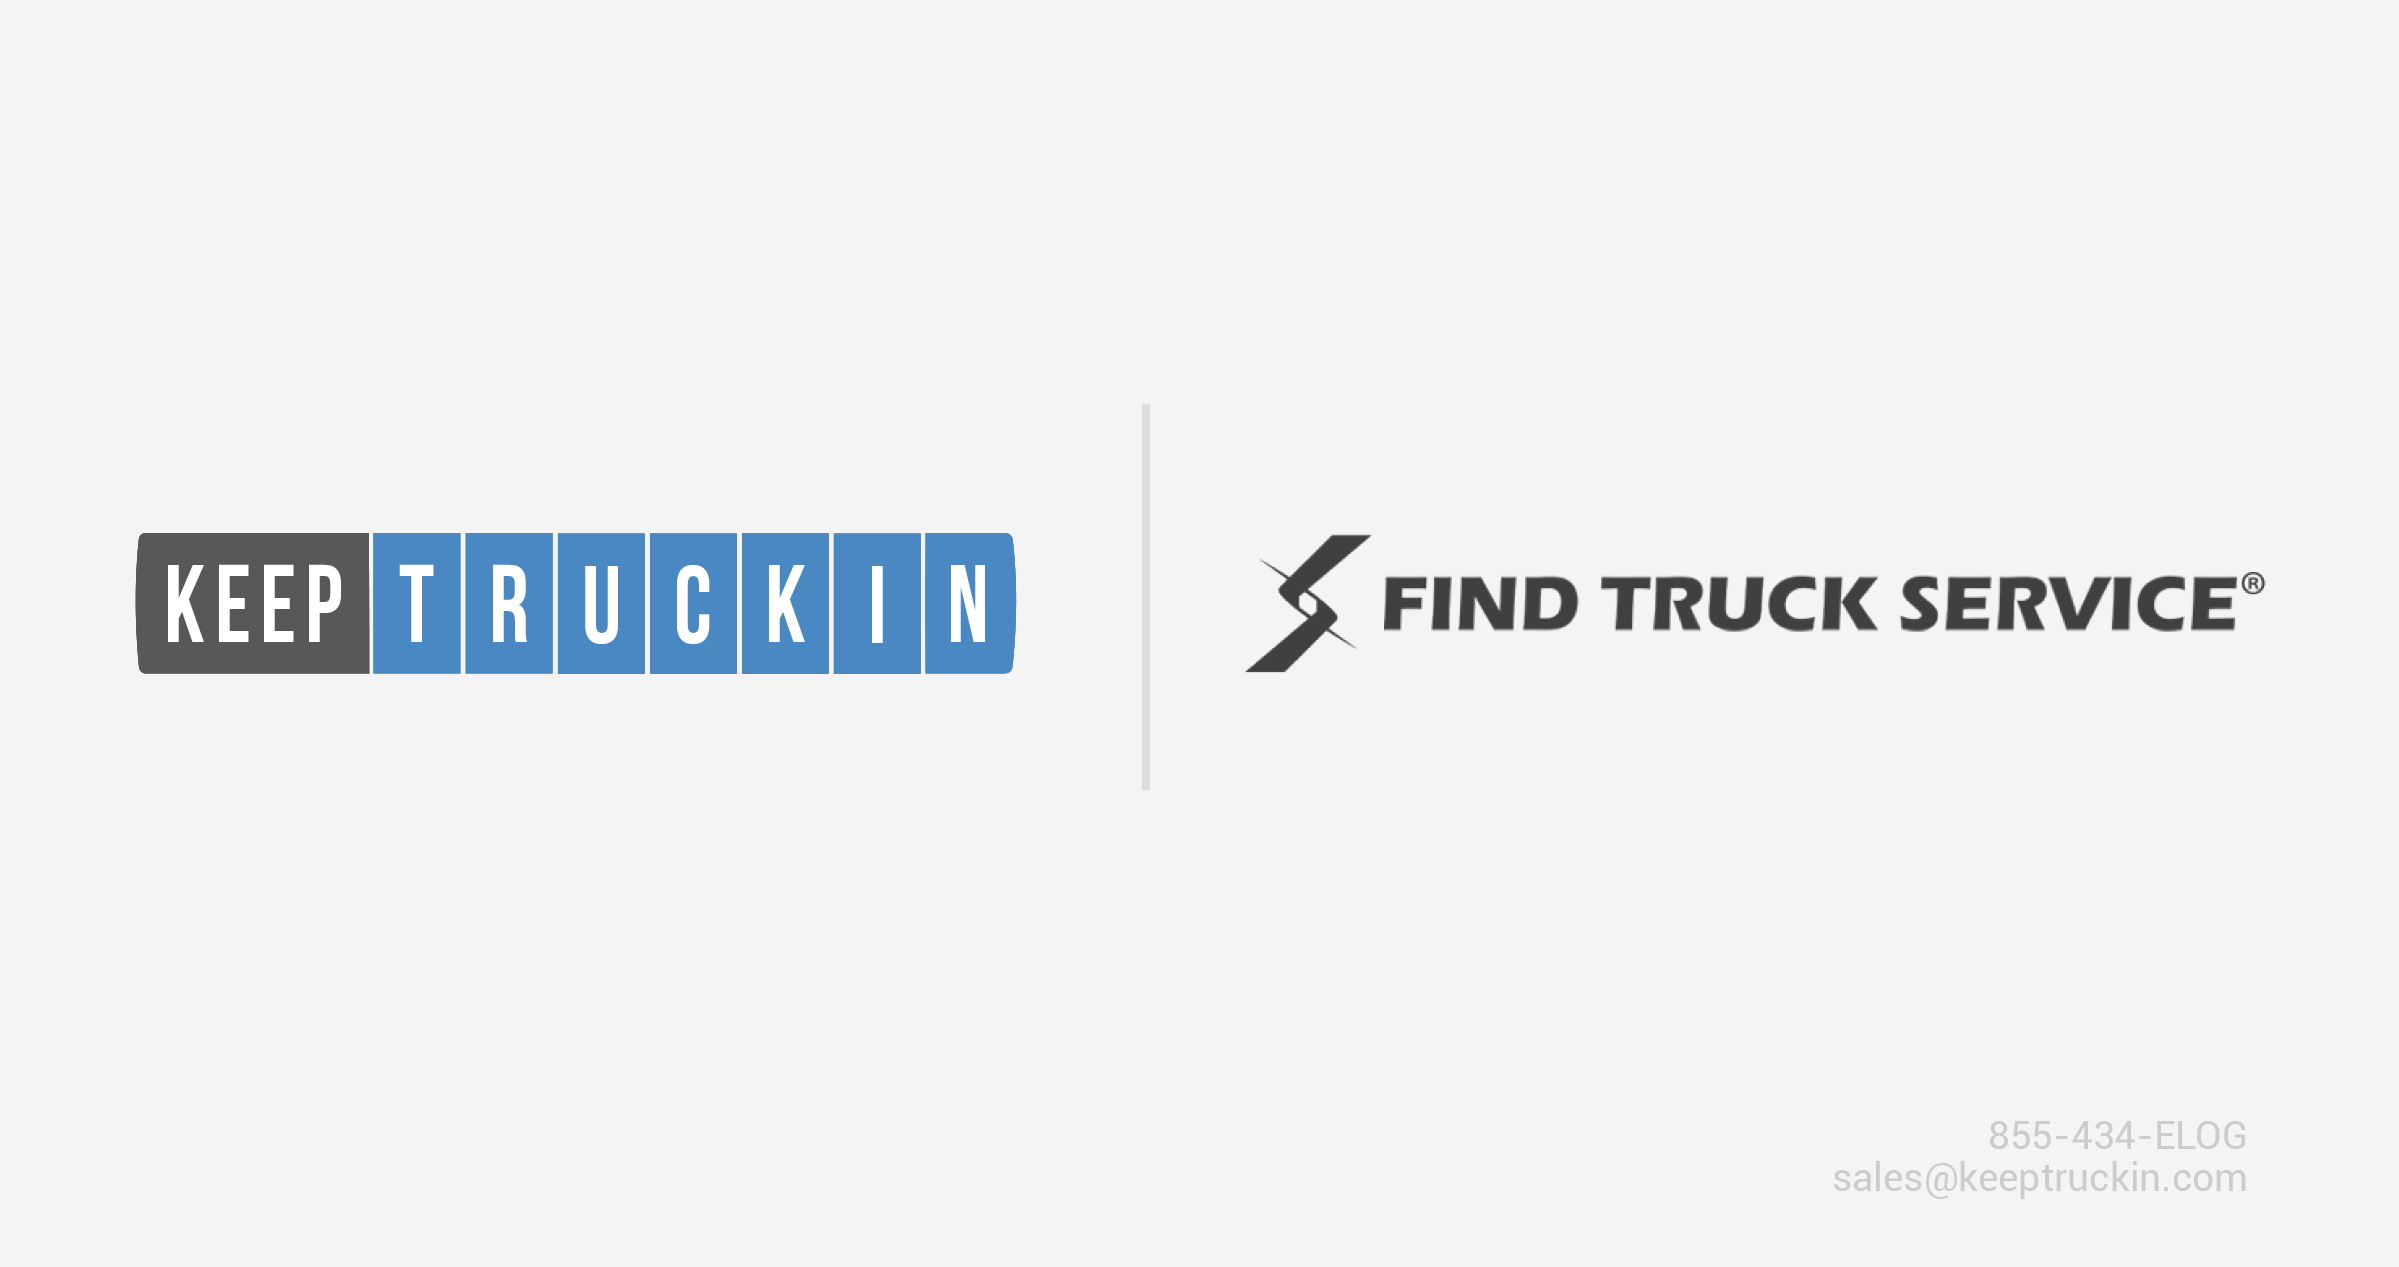 KeepTruckin and Find Truck Service partner to help truckers with ELD compliance